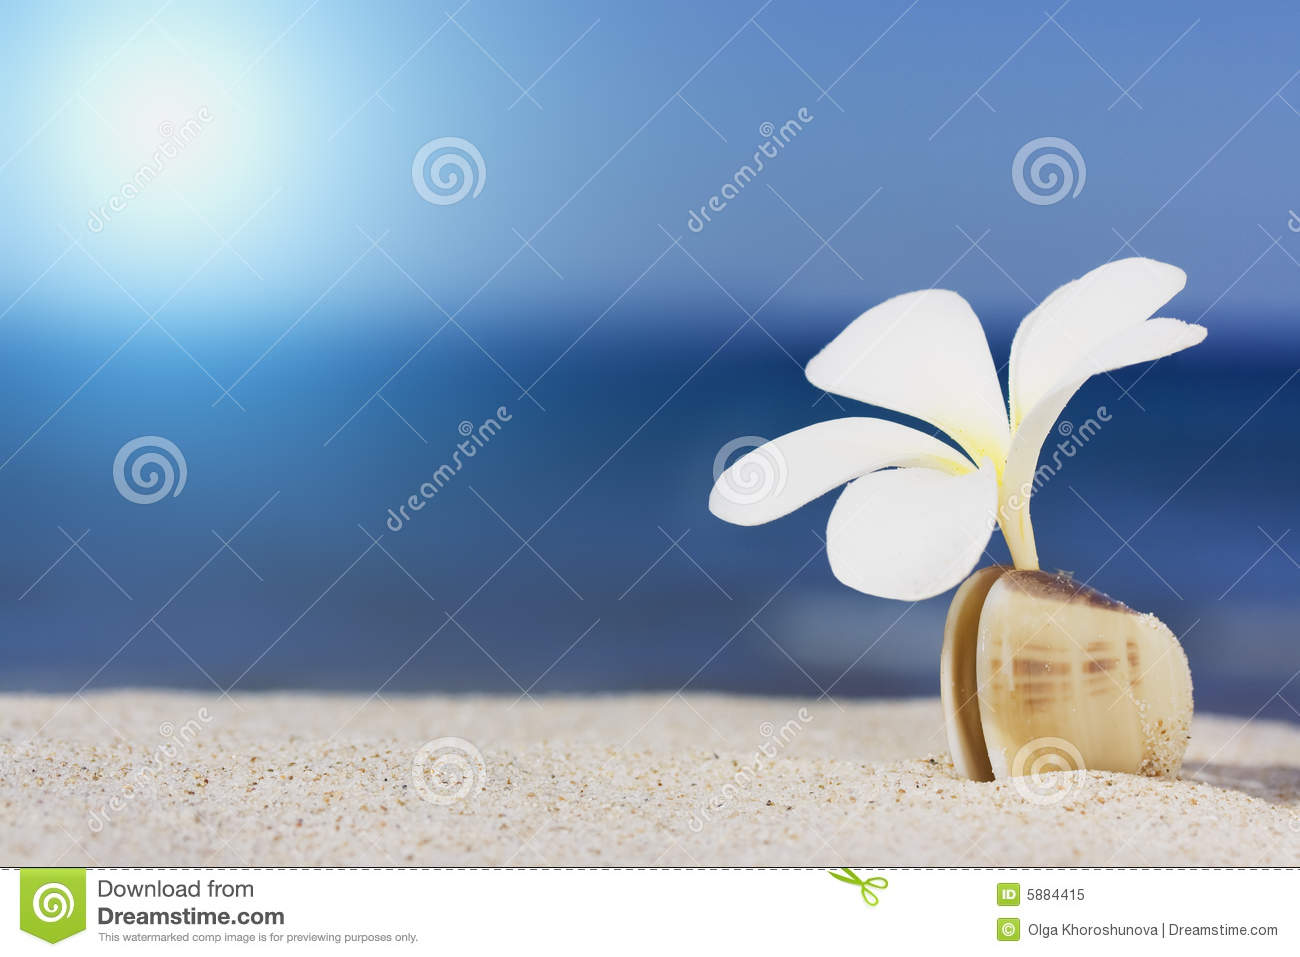 Seashell and flower on the beach